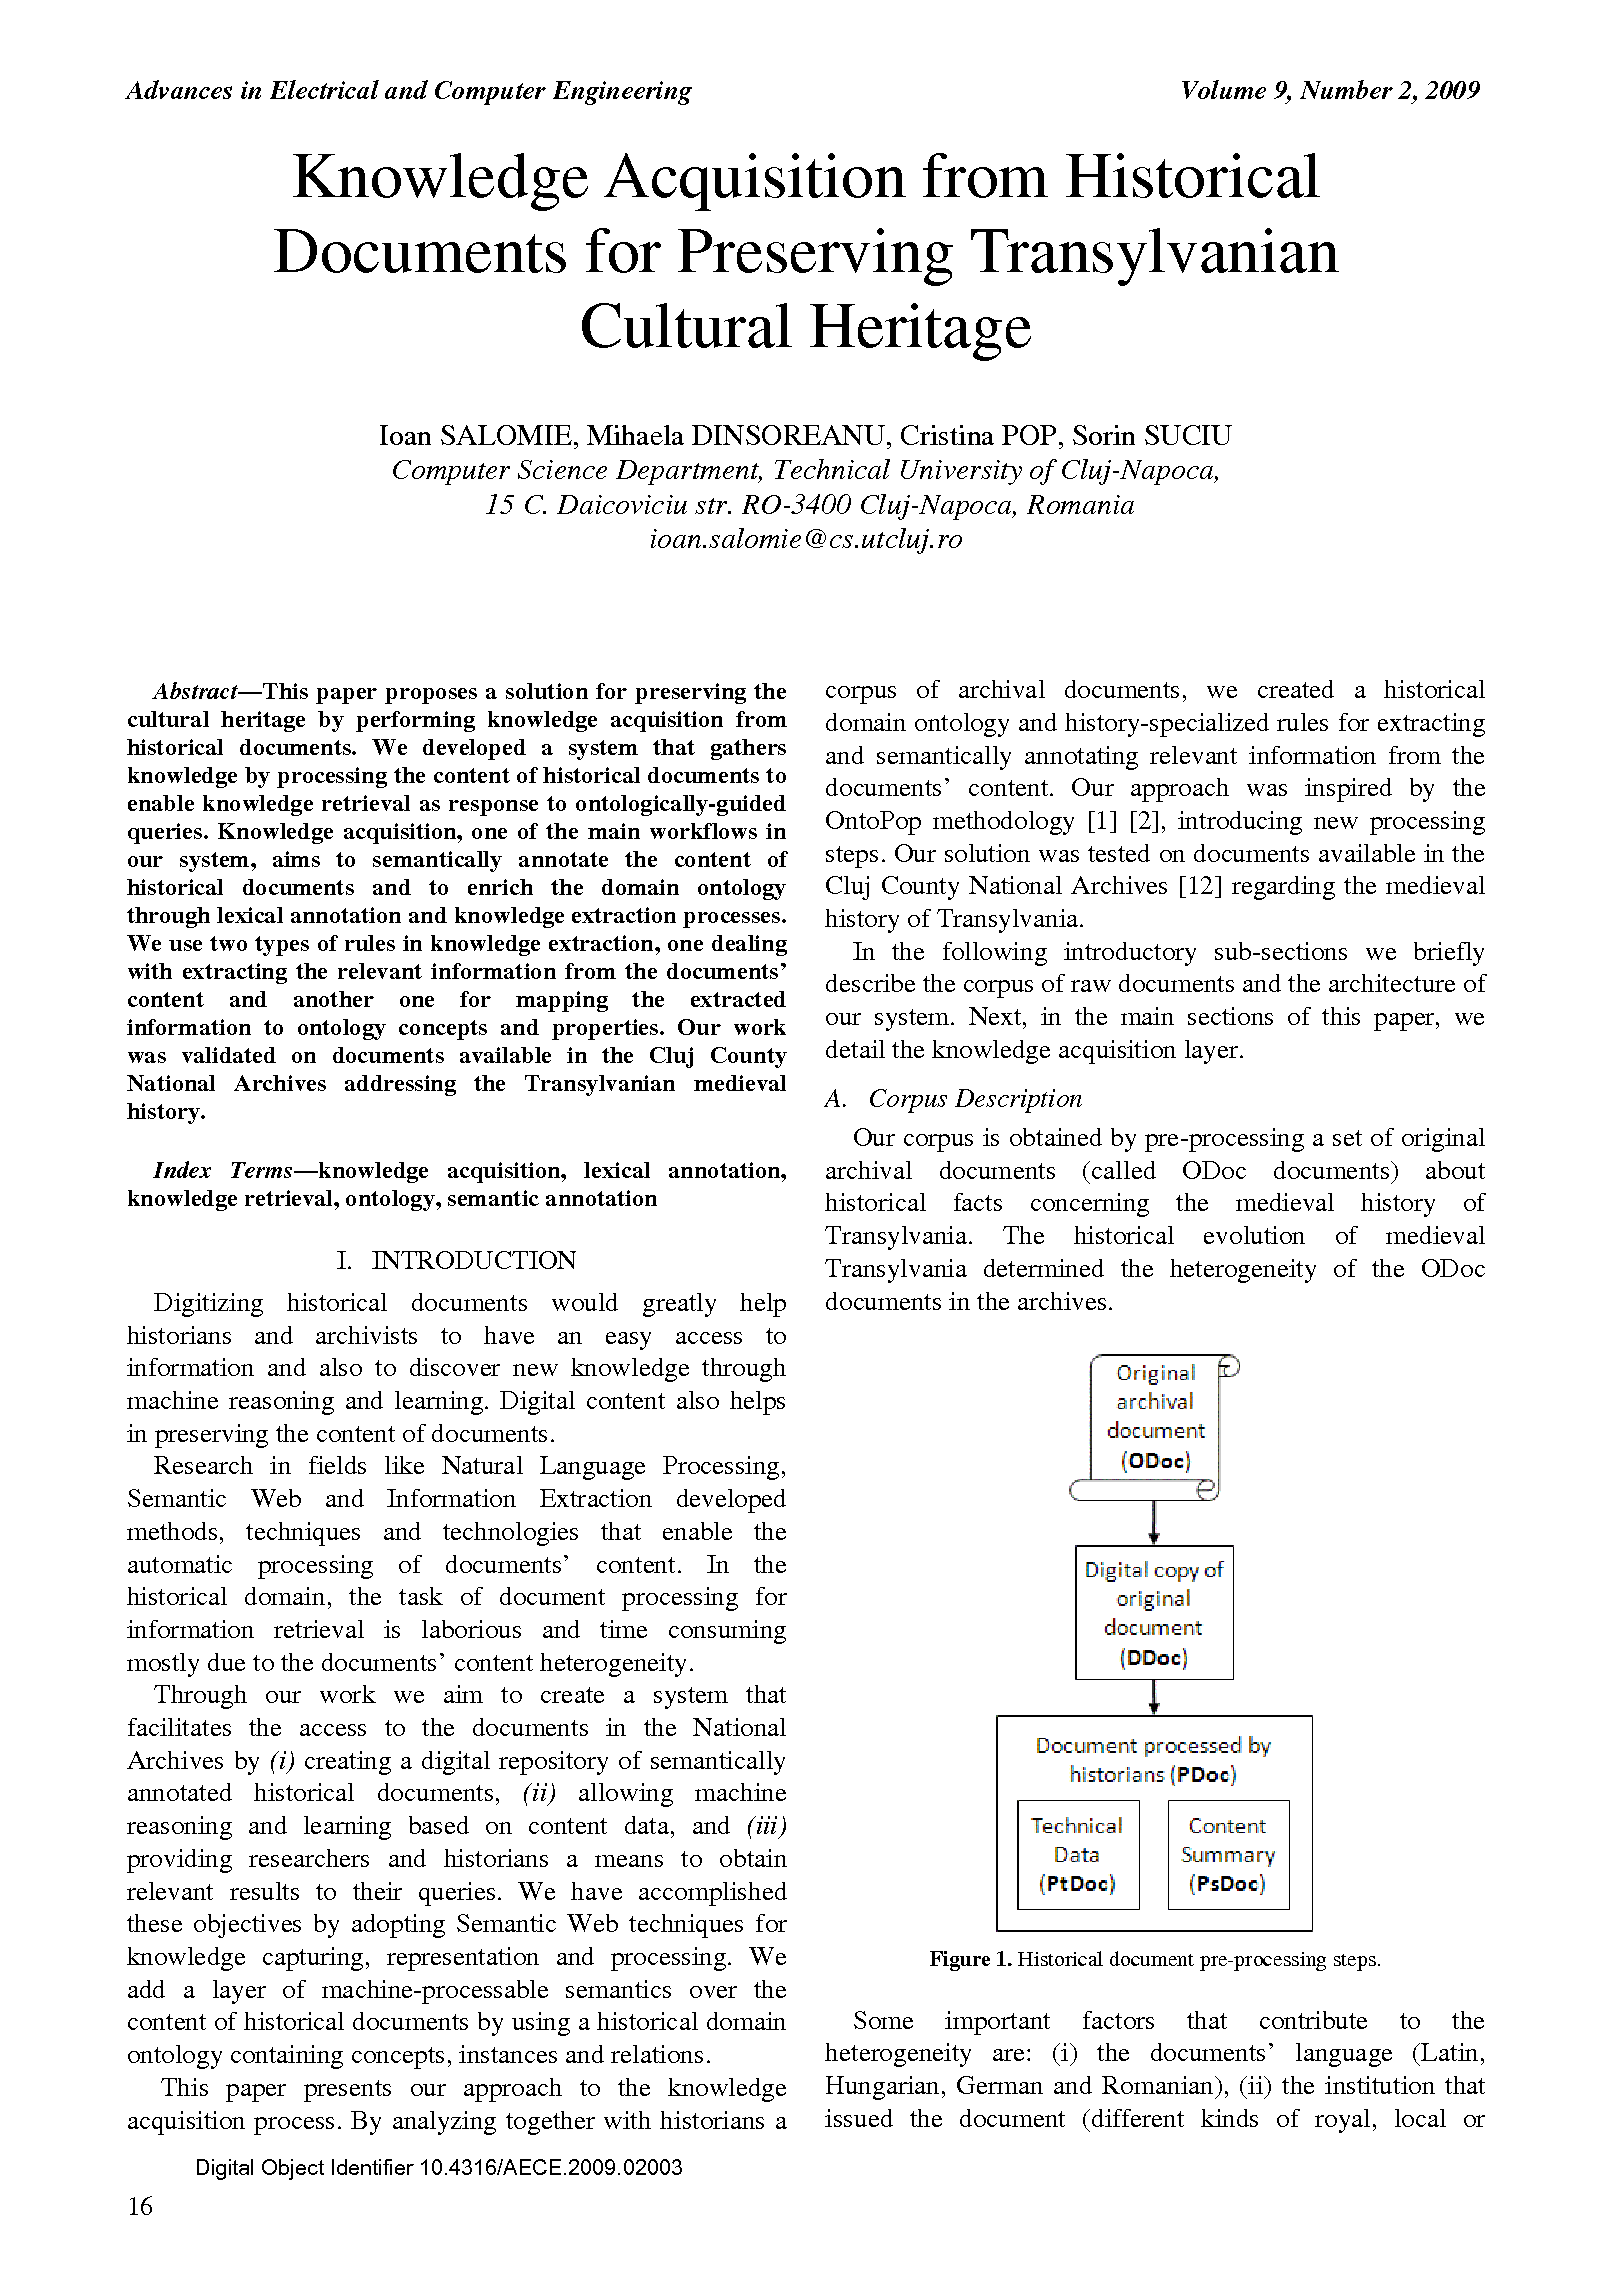 PDF Quickview for paper with DOI:10.4316/AECE.2009.02003